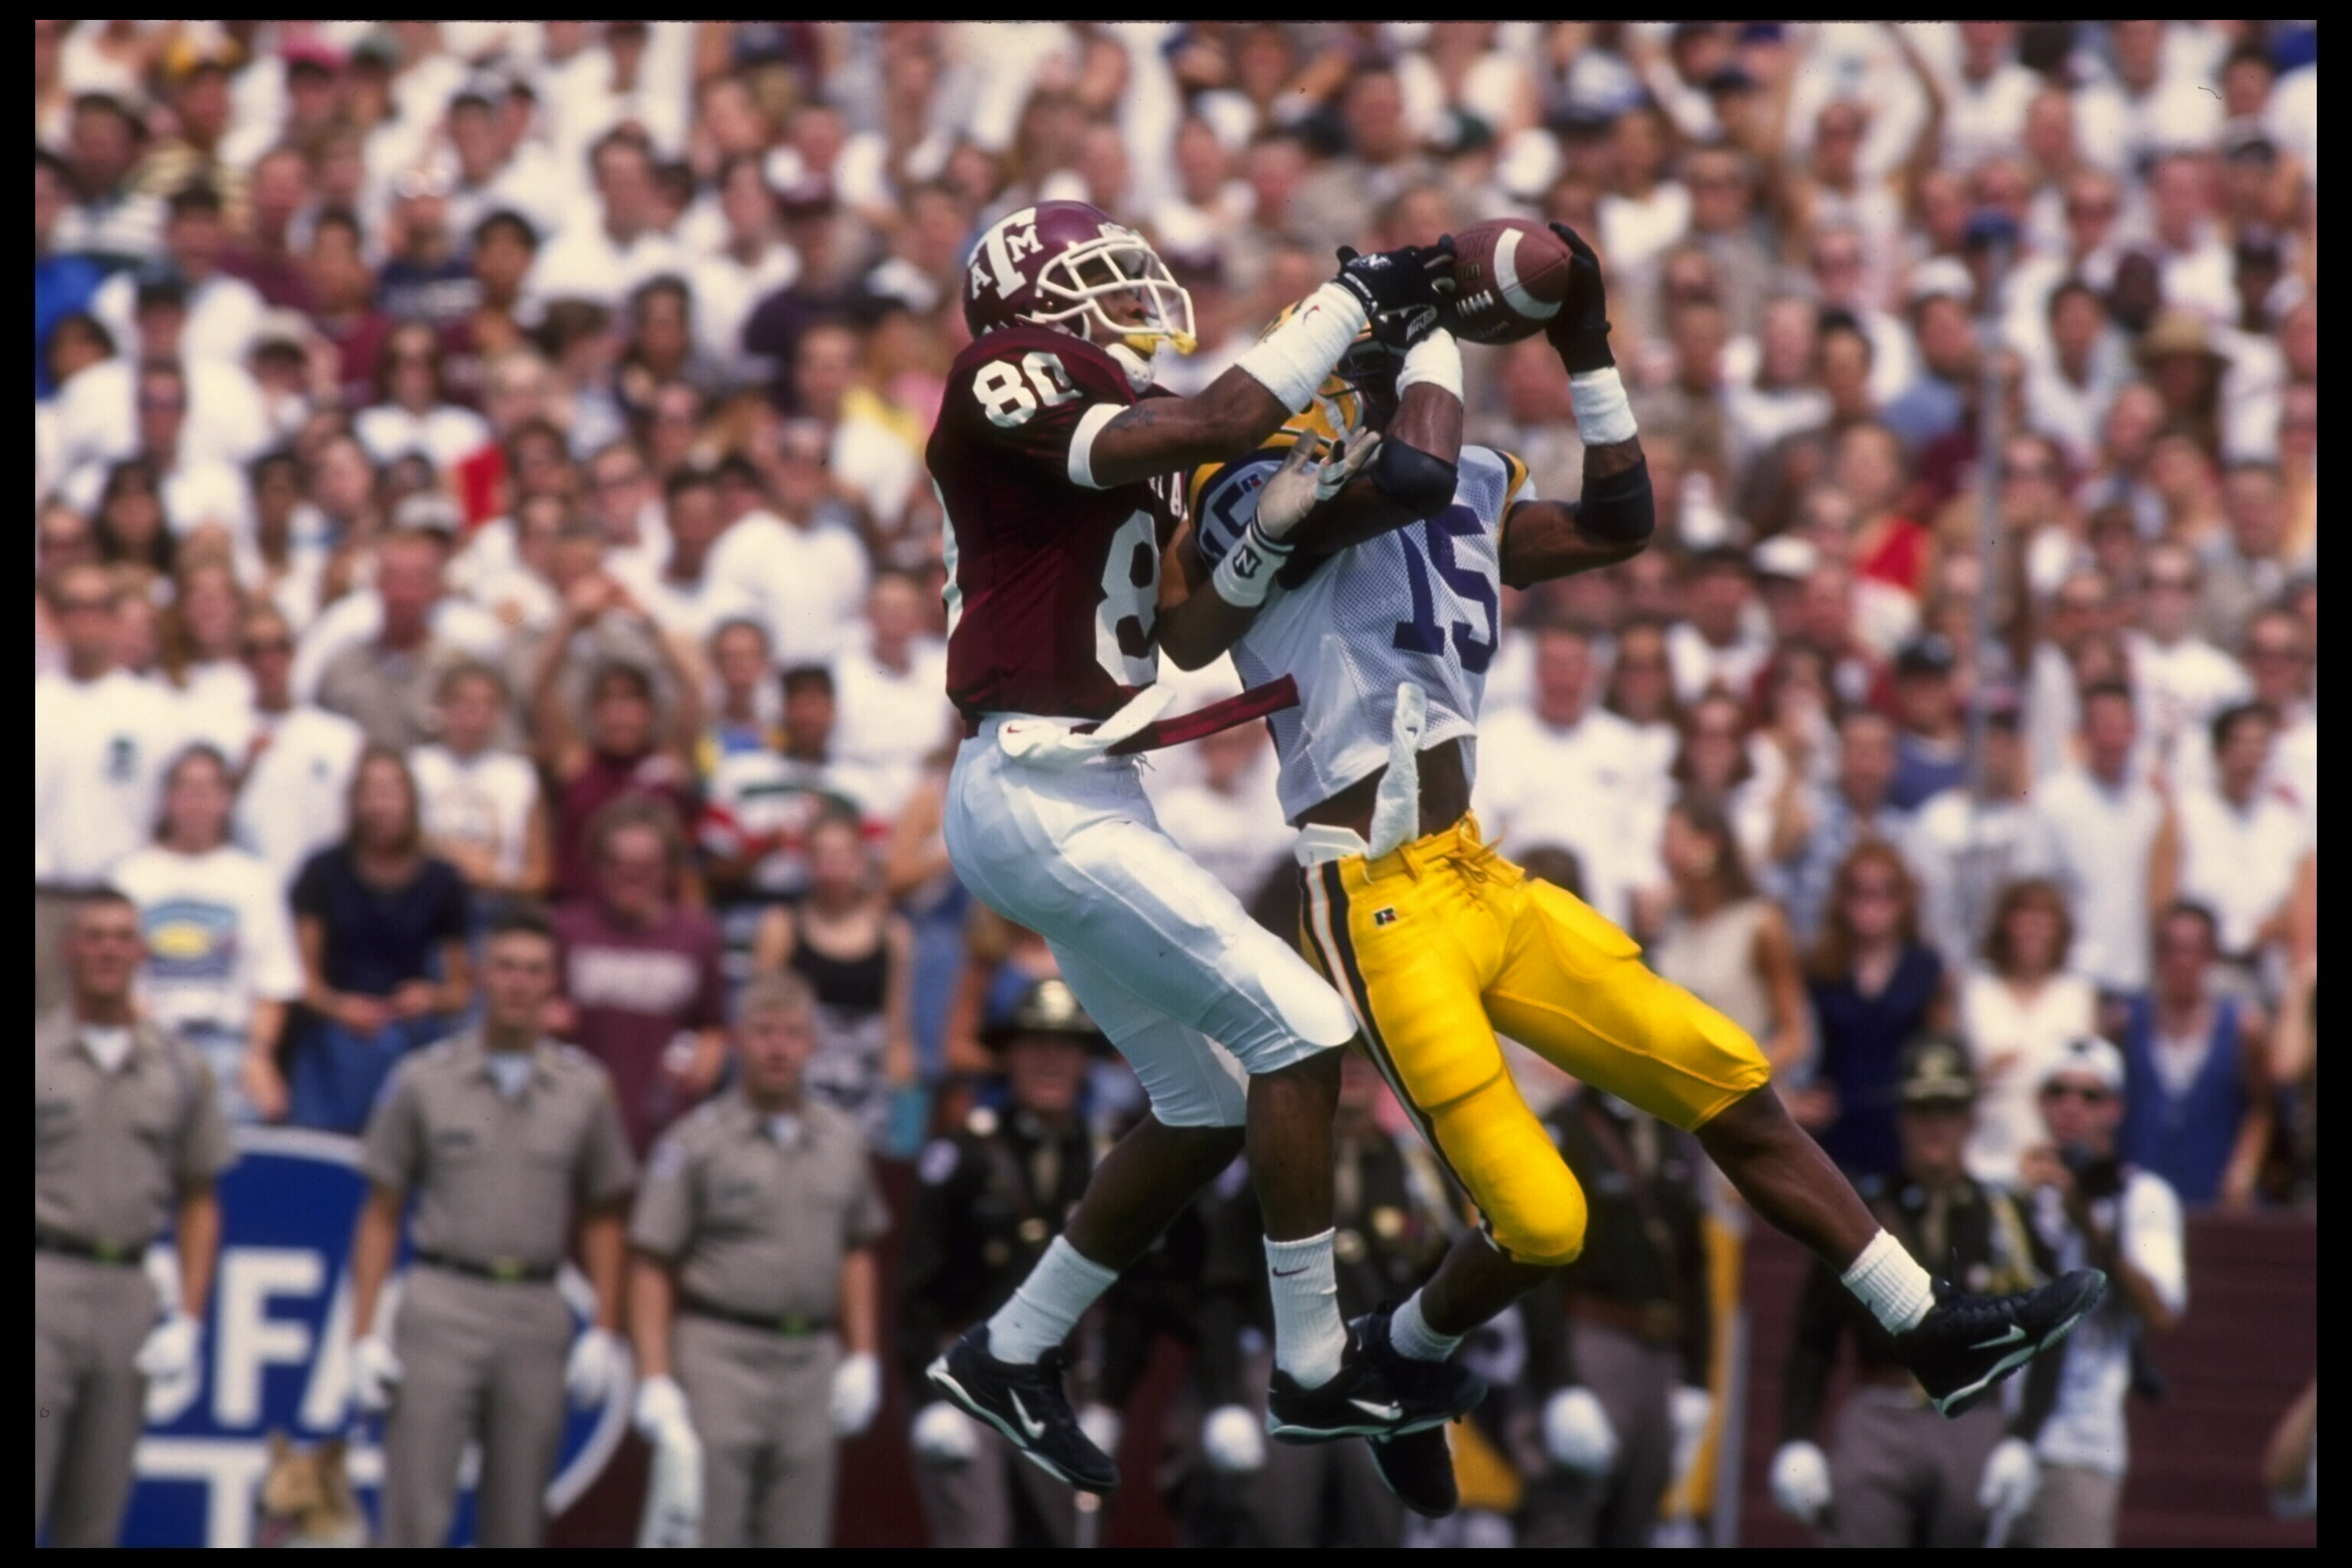 2 SEP 1995:  TEXAS A&M WIDE RECEIVER ALBERT CONNELL #80 LEAPS OVER LSU DEFENSIVE BACK TROY TWILLIE #15 IN ATTEMPTS TO MAKE A CATCH DURING TEXAS A&M''S 33-17 WIN AT KYLE FIELD IN COLLEGE STATION, TEXAS.  MANDATORY CREDIT:  ROBERT SEALE/ALLSPORT